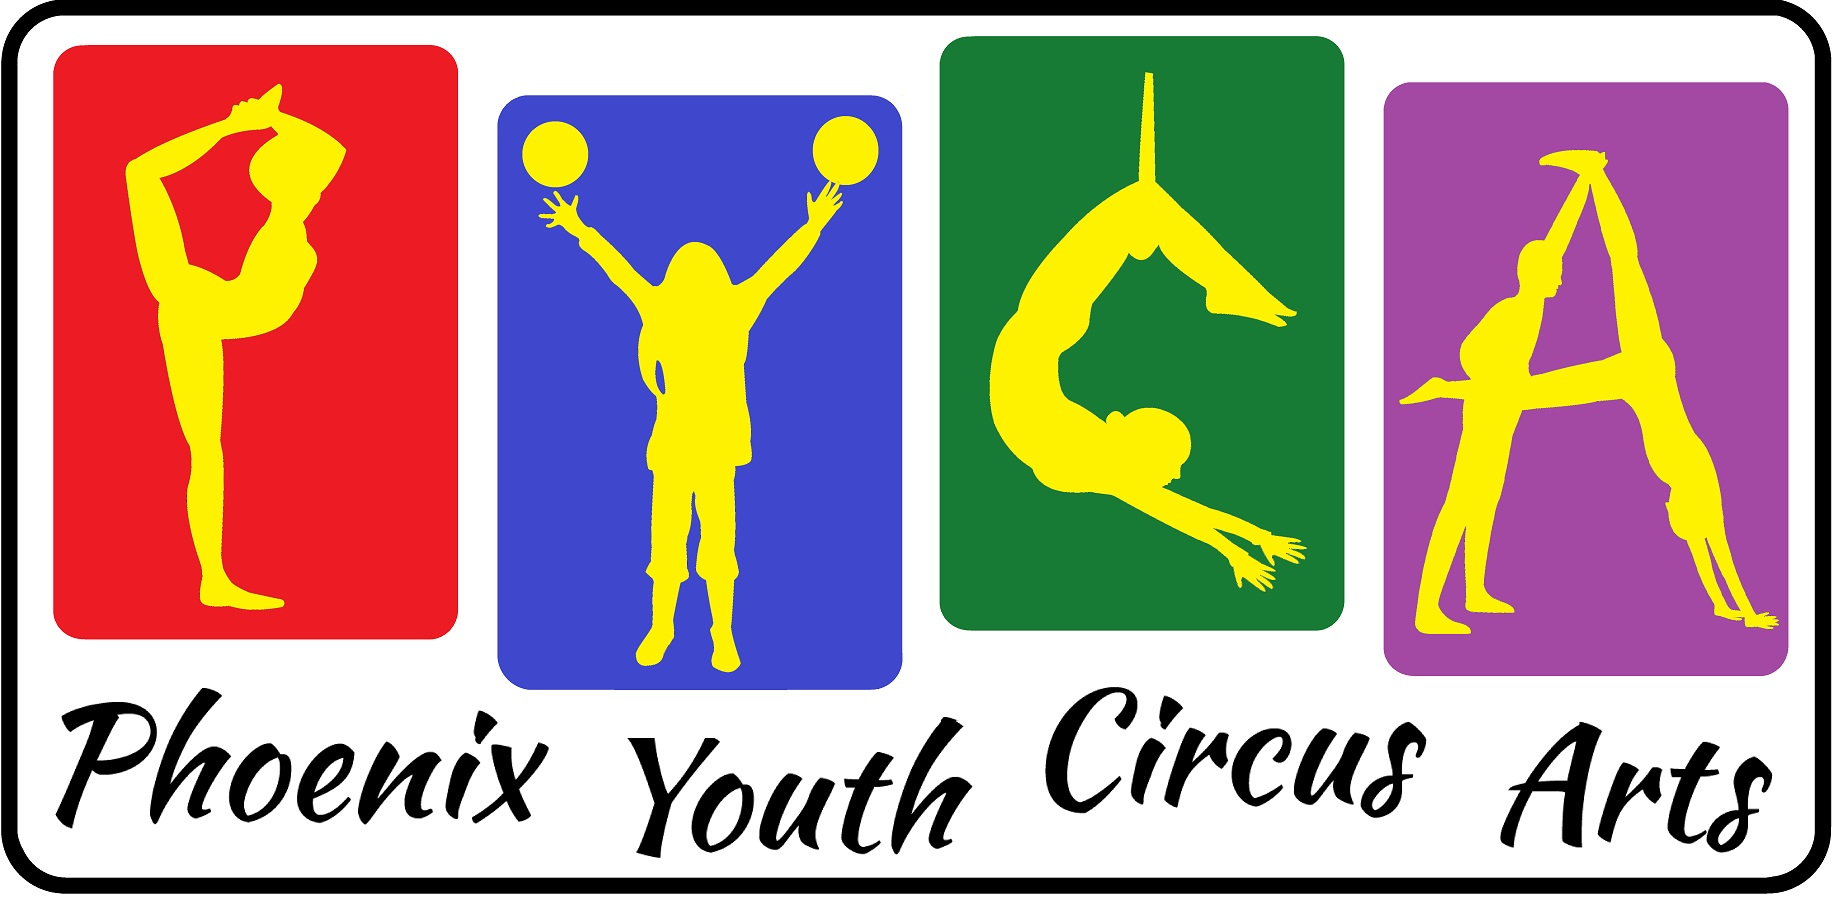 Phoenix Youth Circus Arts, Inc. : The Technical Assistance ...